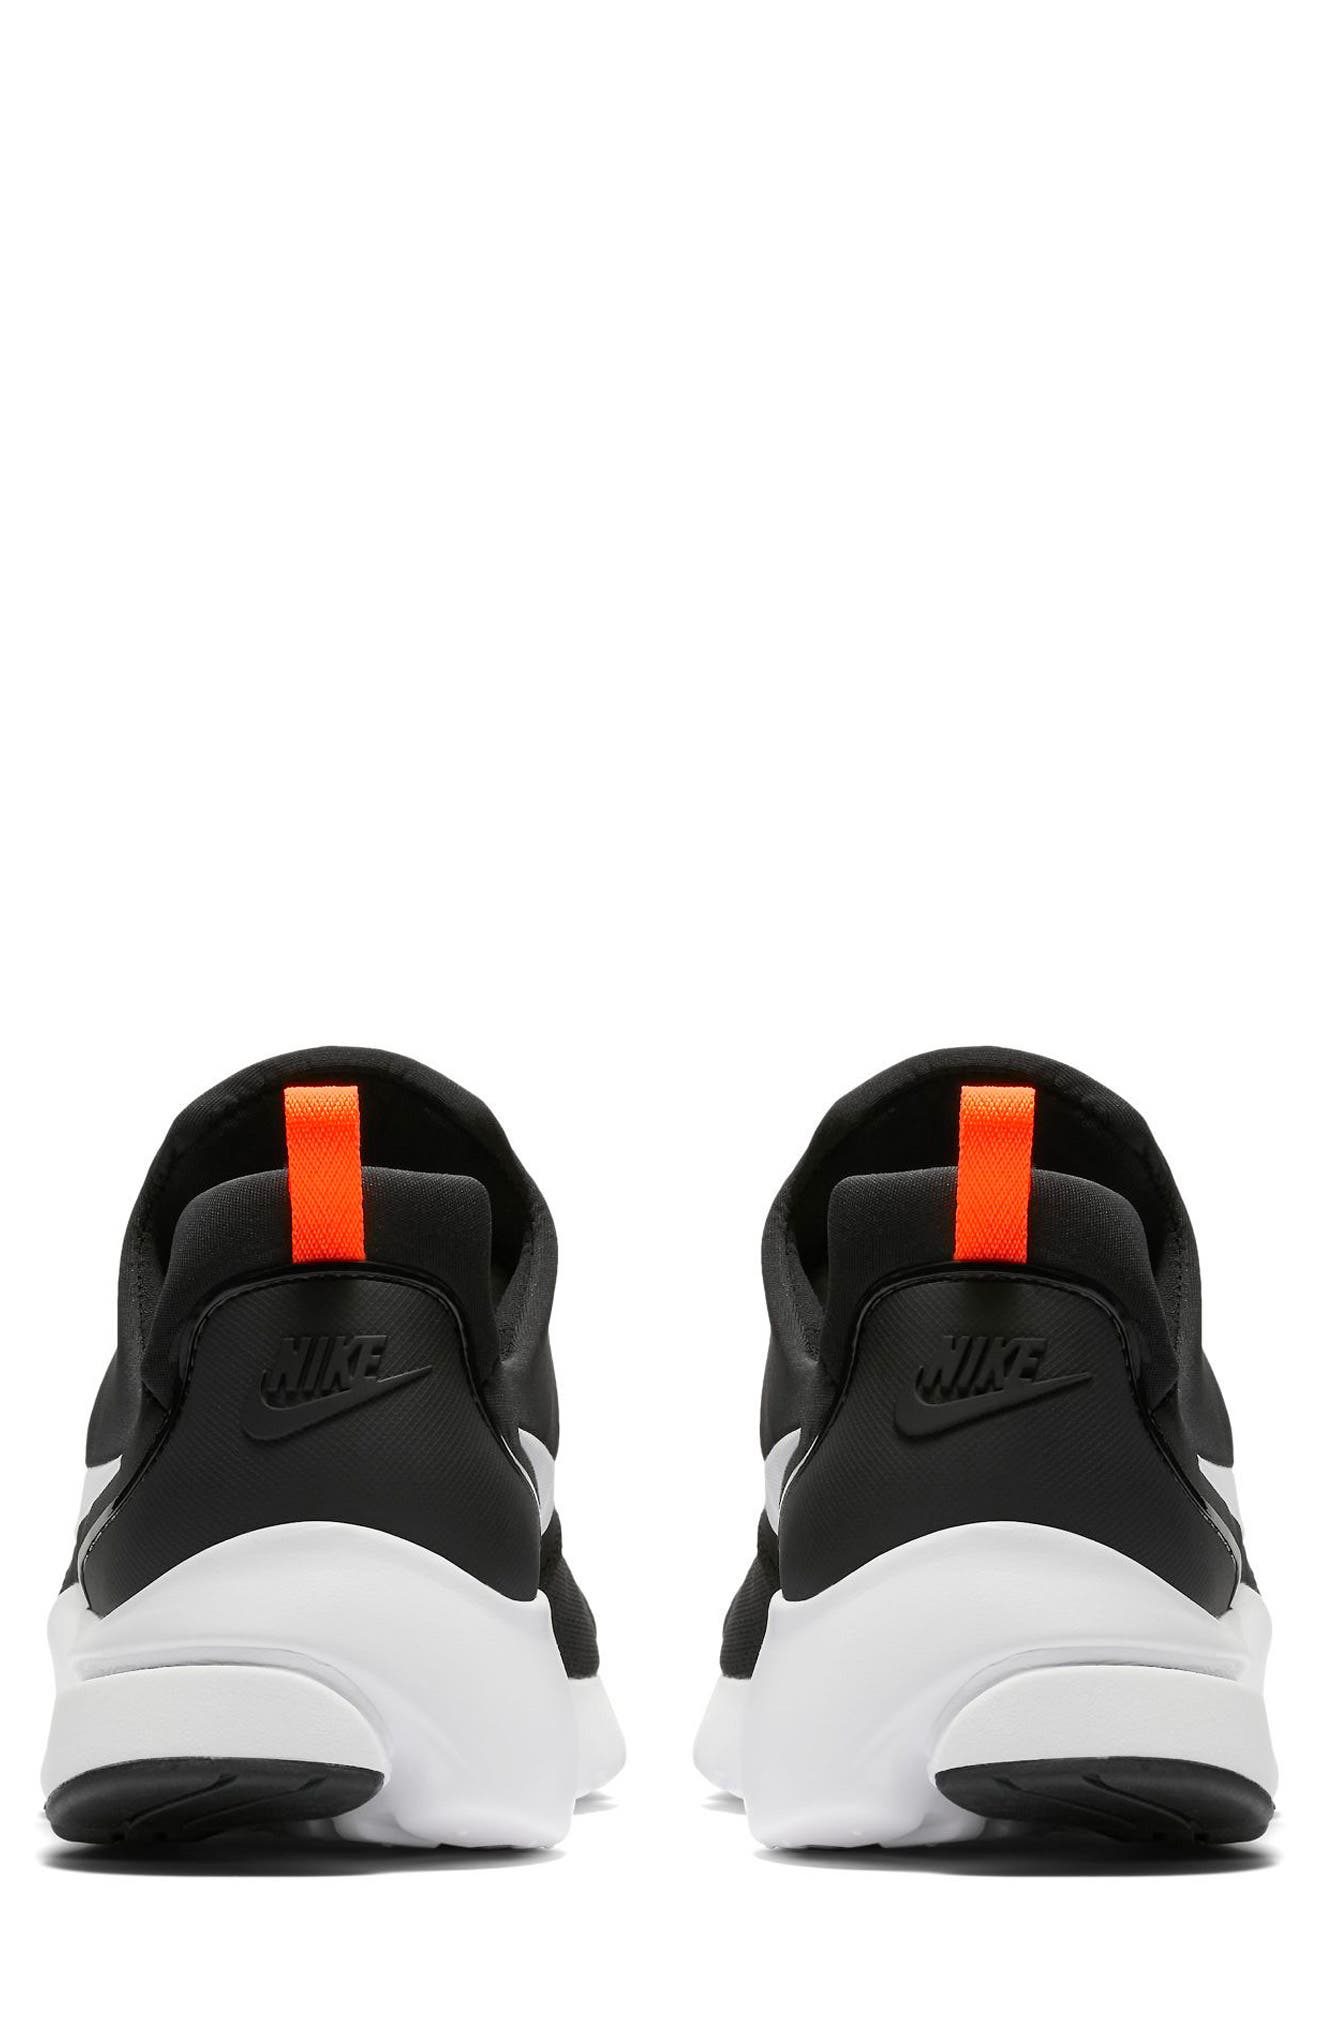 Presto Fly Sneaker,                             Alternate thumbnail 5, color,                             BLACK/ WHITE/ TOTAL ORANGE